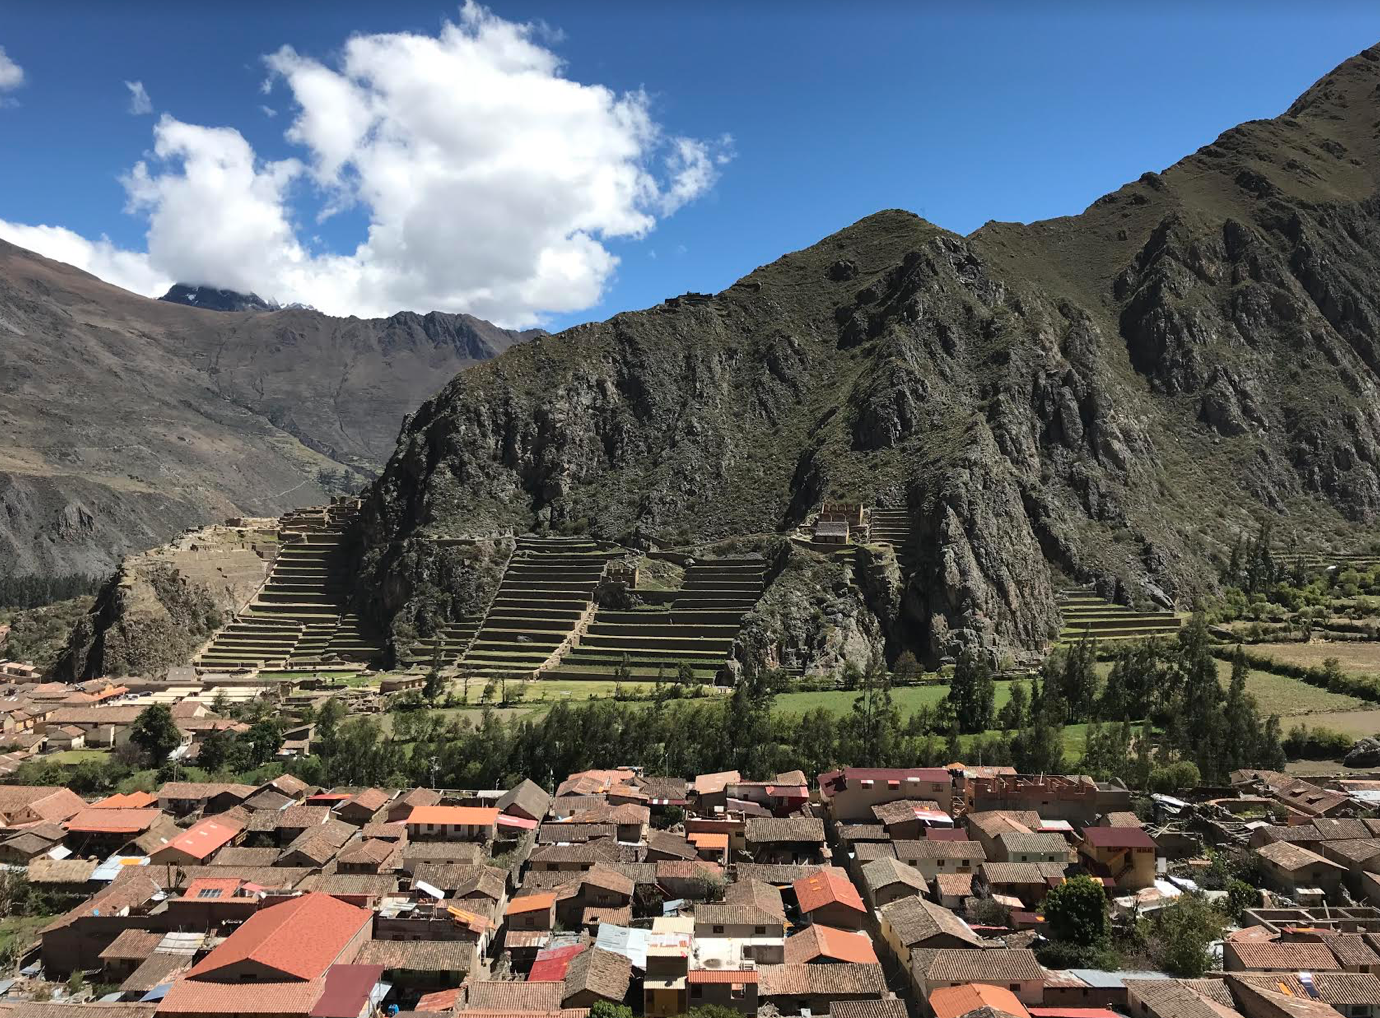 Captured:beautiful view from Pinkulluna Mountain in Ollantaytambo. Not captured: the thrill of climbing a wonderfully steep mountain with inconsistent railings, the rocks on the side of the mountain area perfect for sitting and catching one's breath, and the ideal mixture of sunshine and breeze.Moments like these are the ones worth remembering.